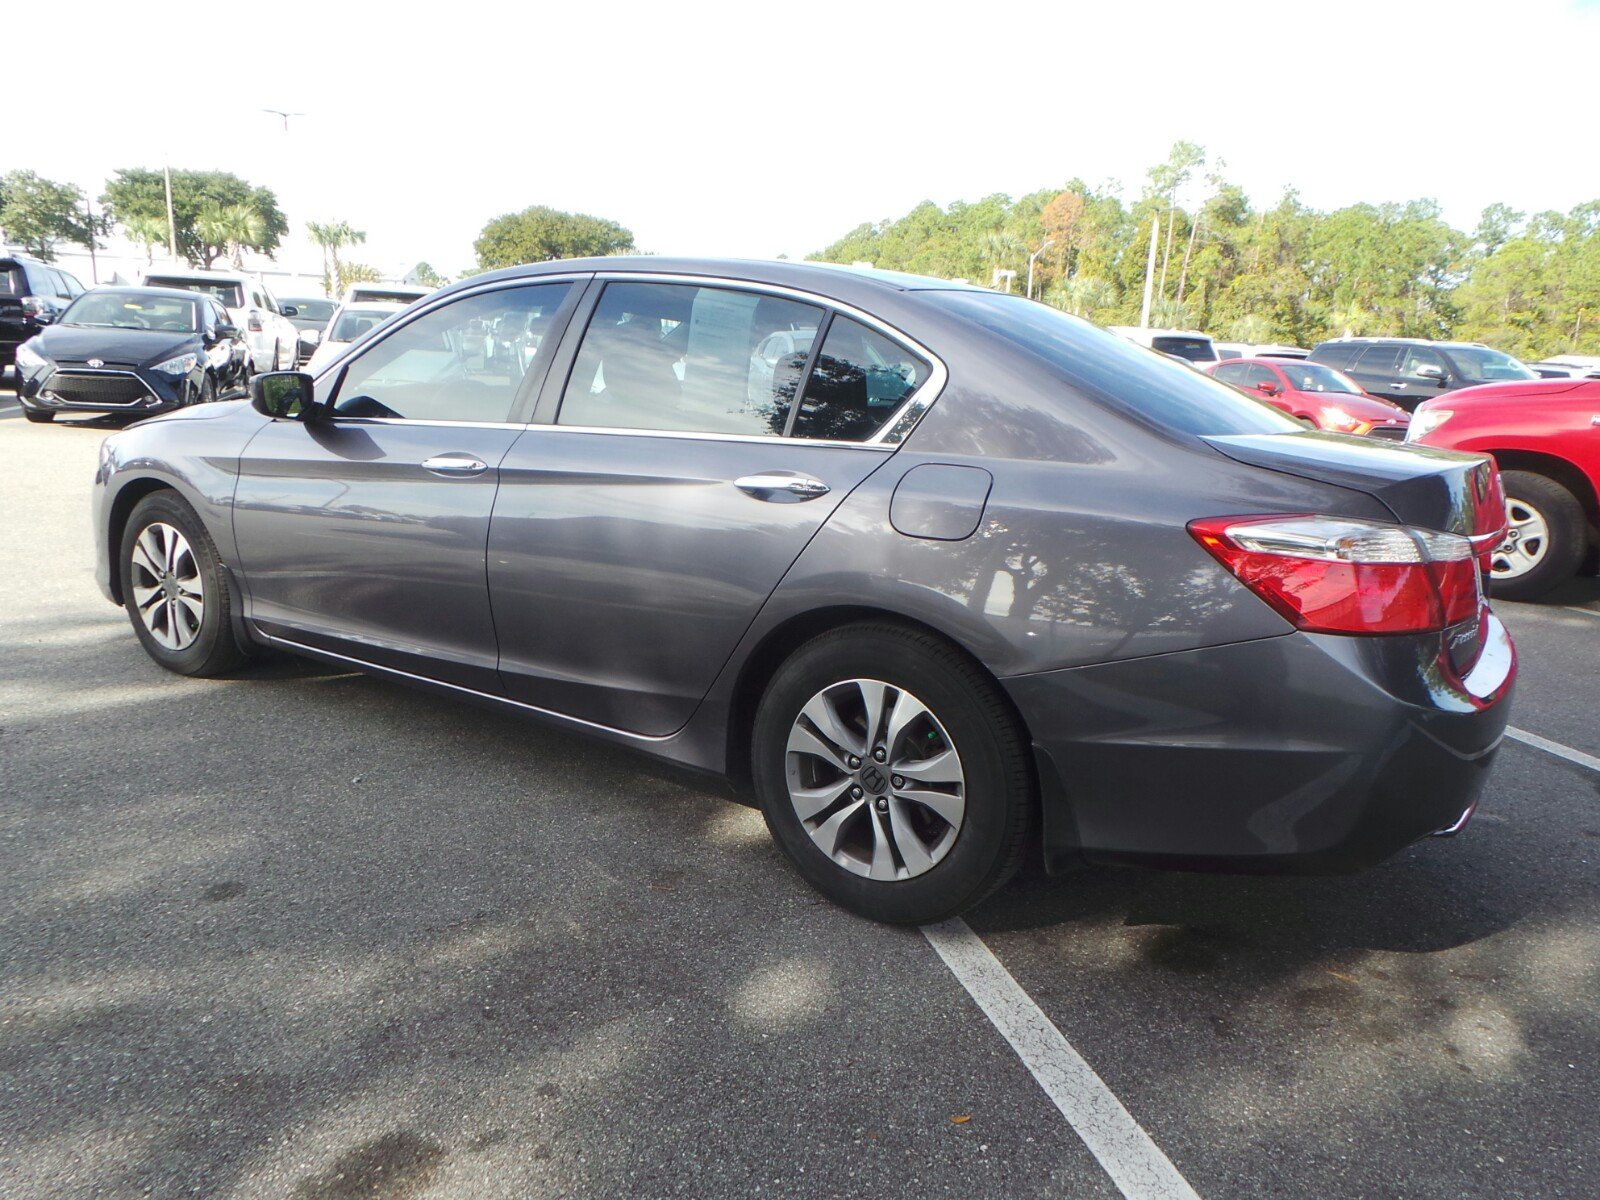 Pre Owned 2014 Honda Accord Sedan LX 4dr Car in Jacksonville A